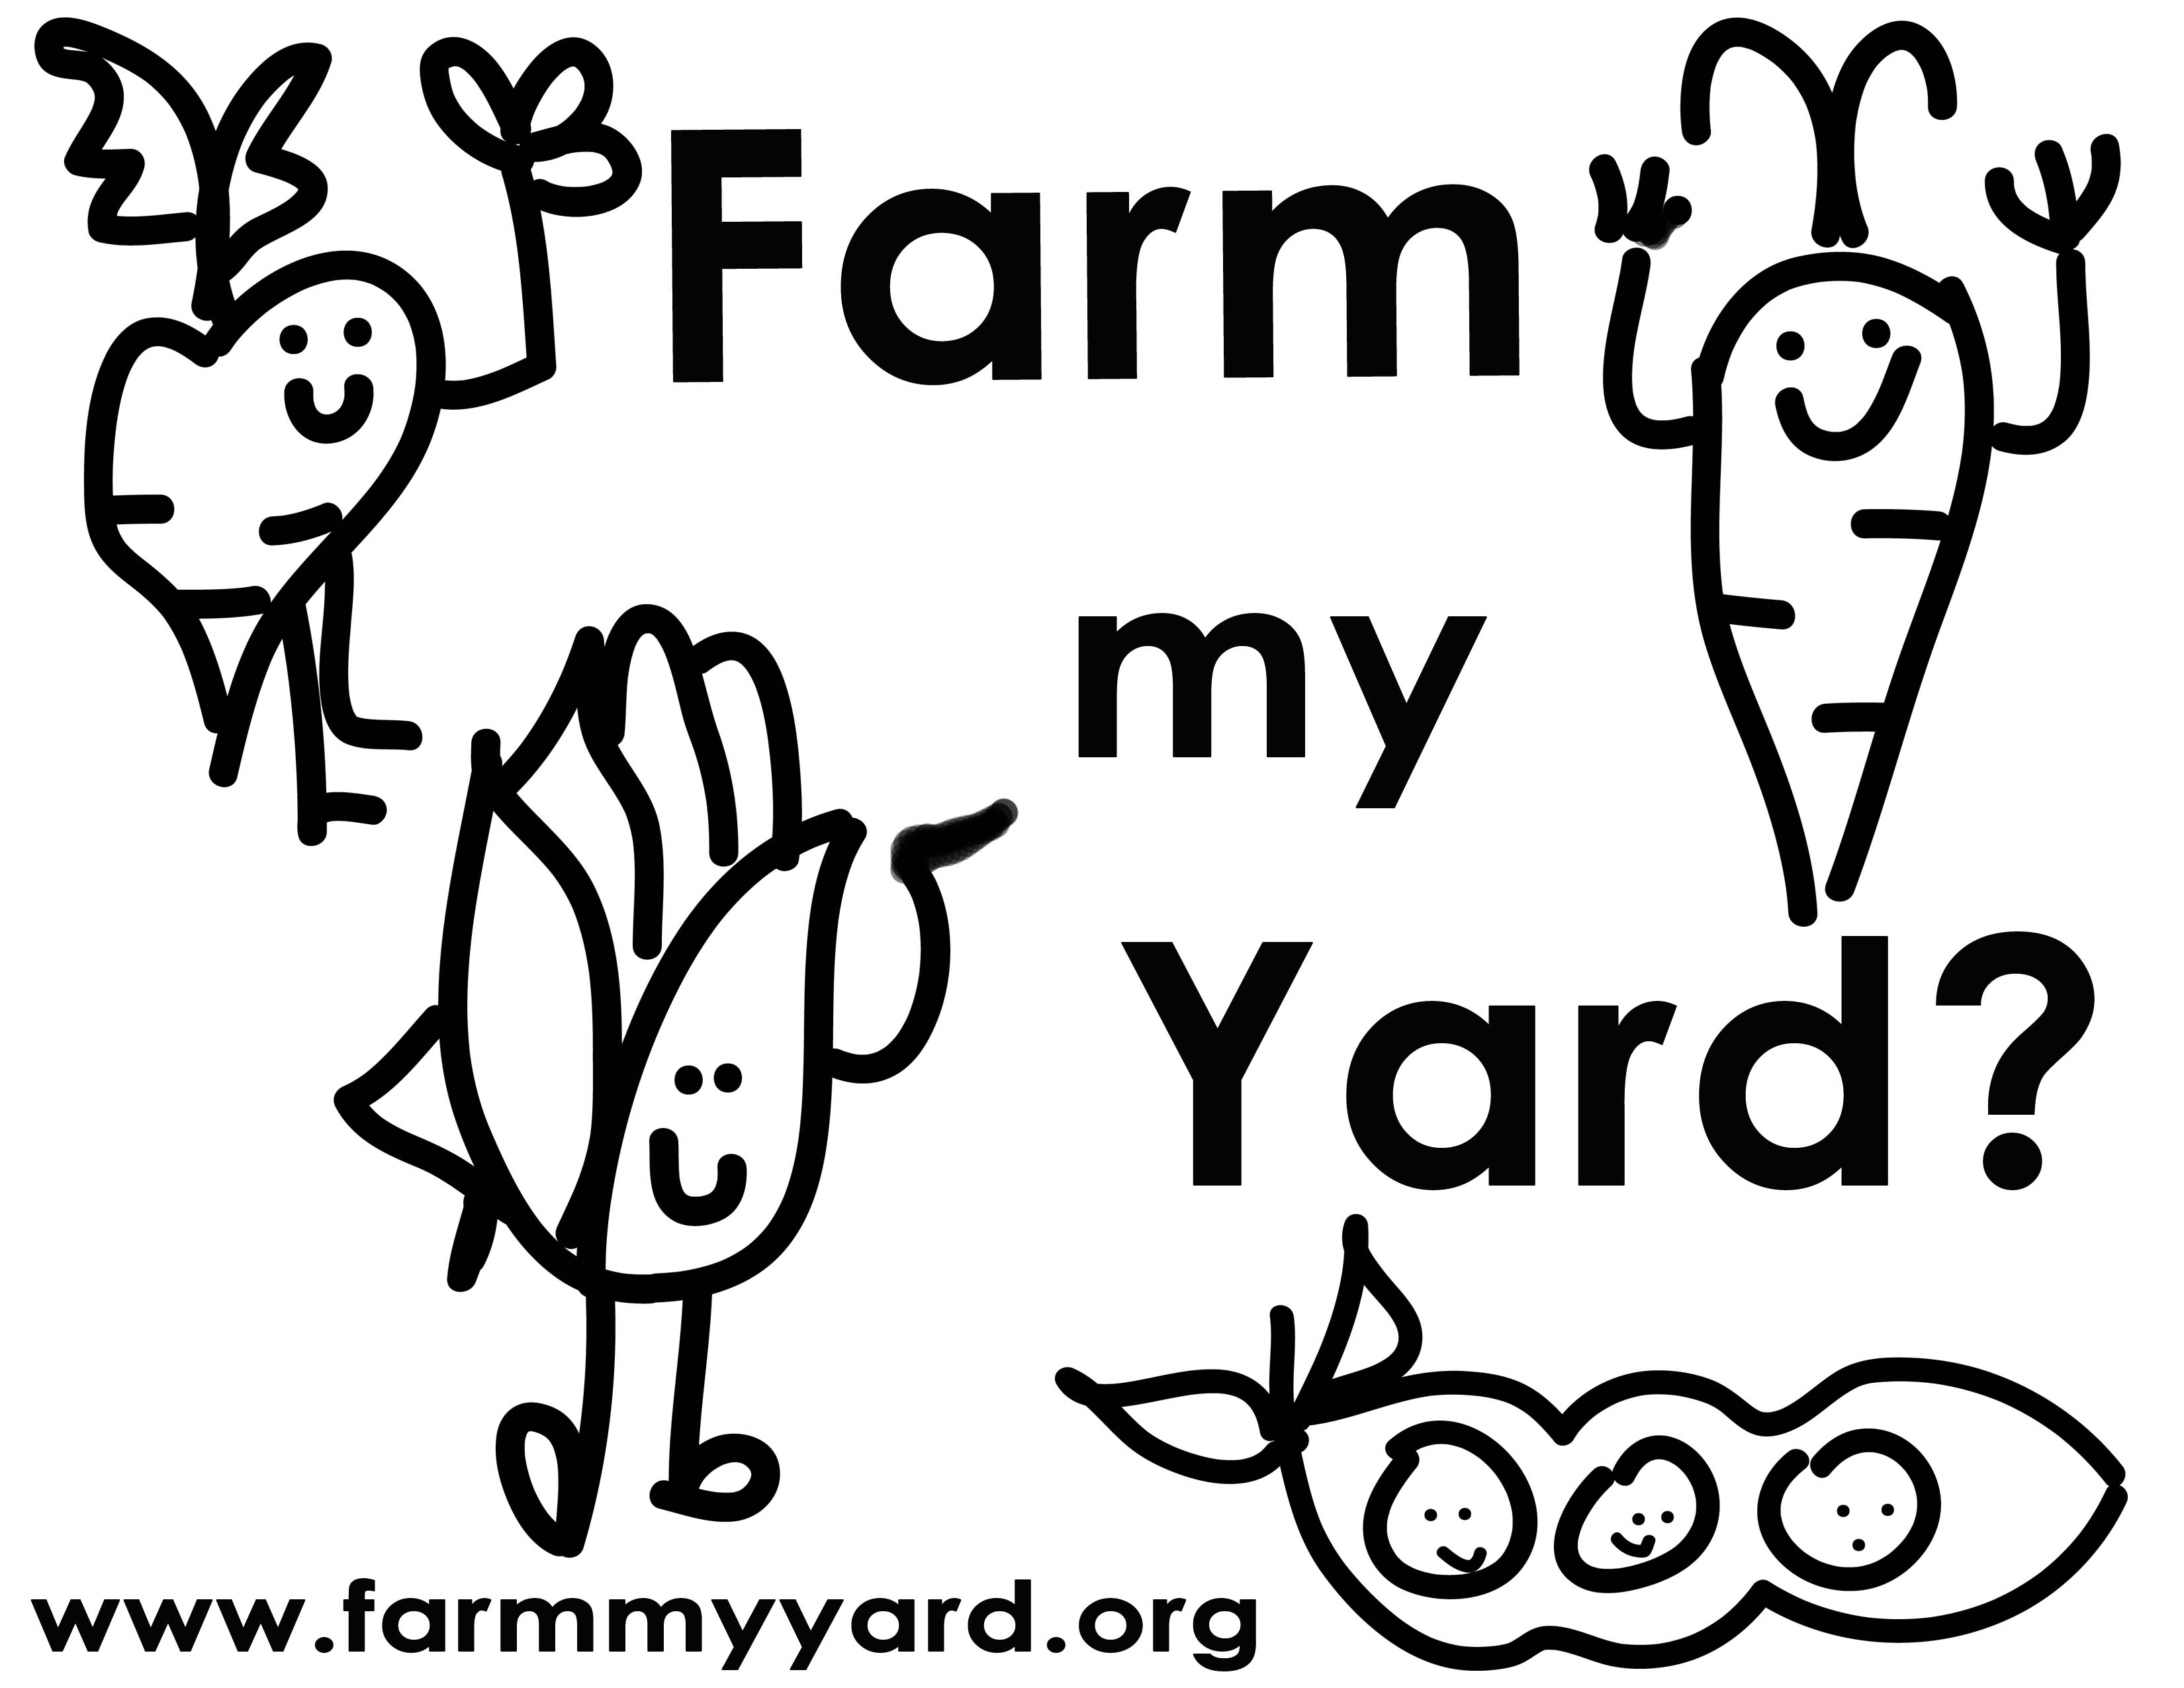 farm-my-yard- Jessica 2